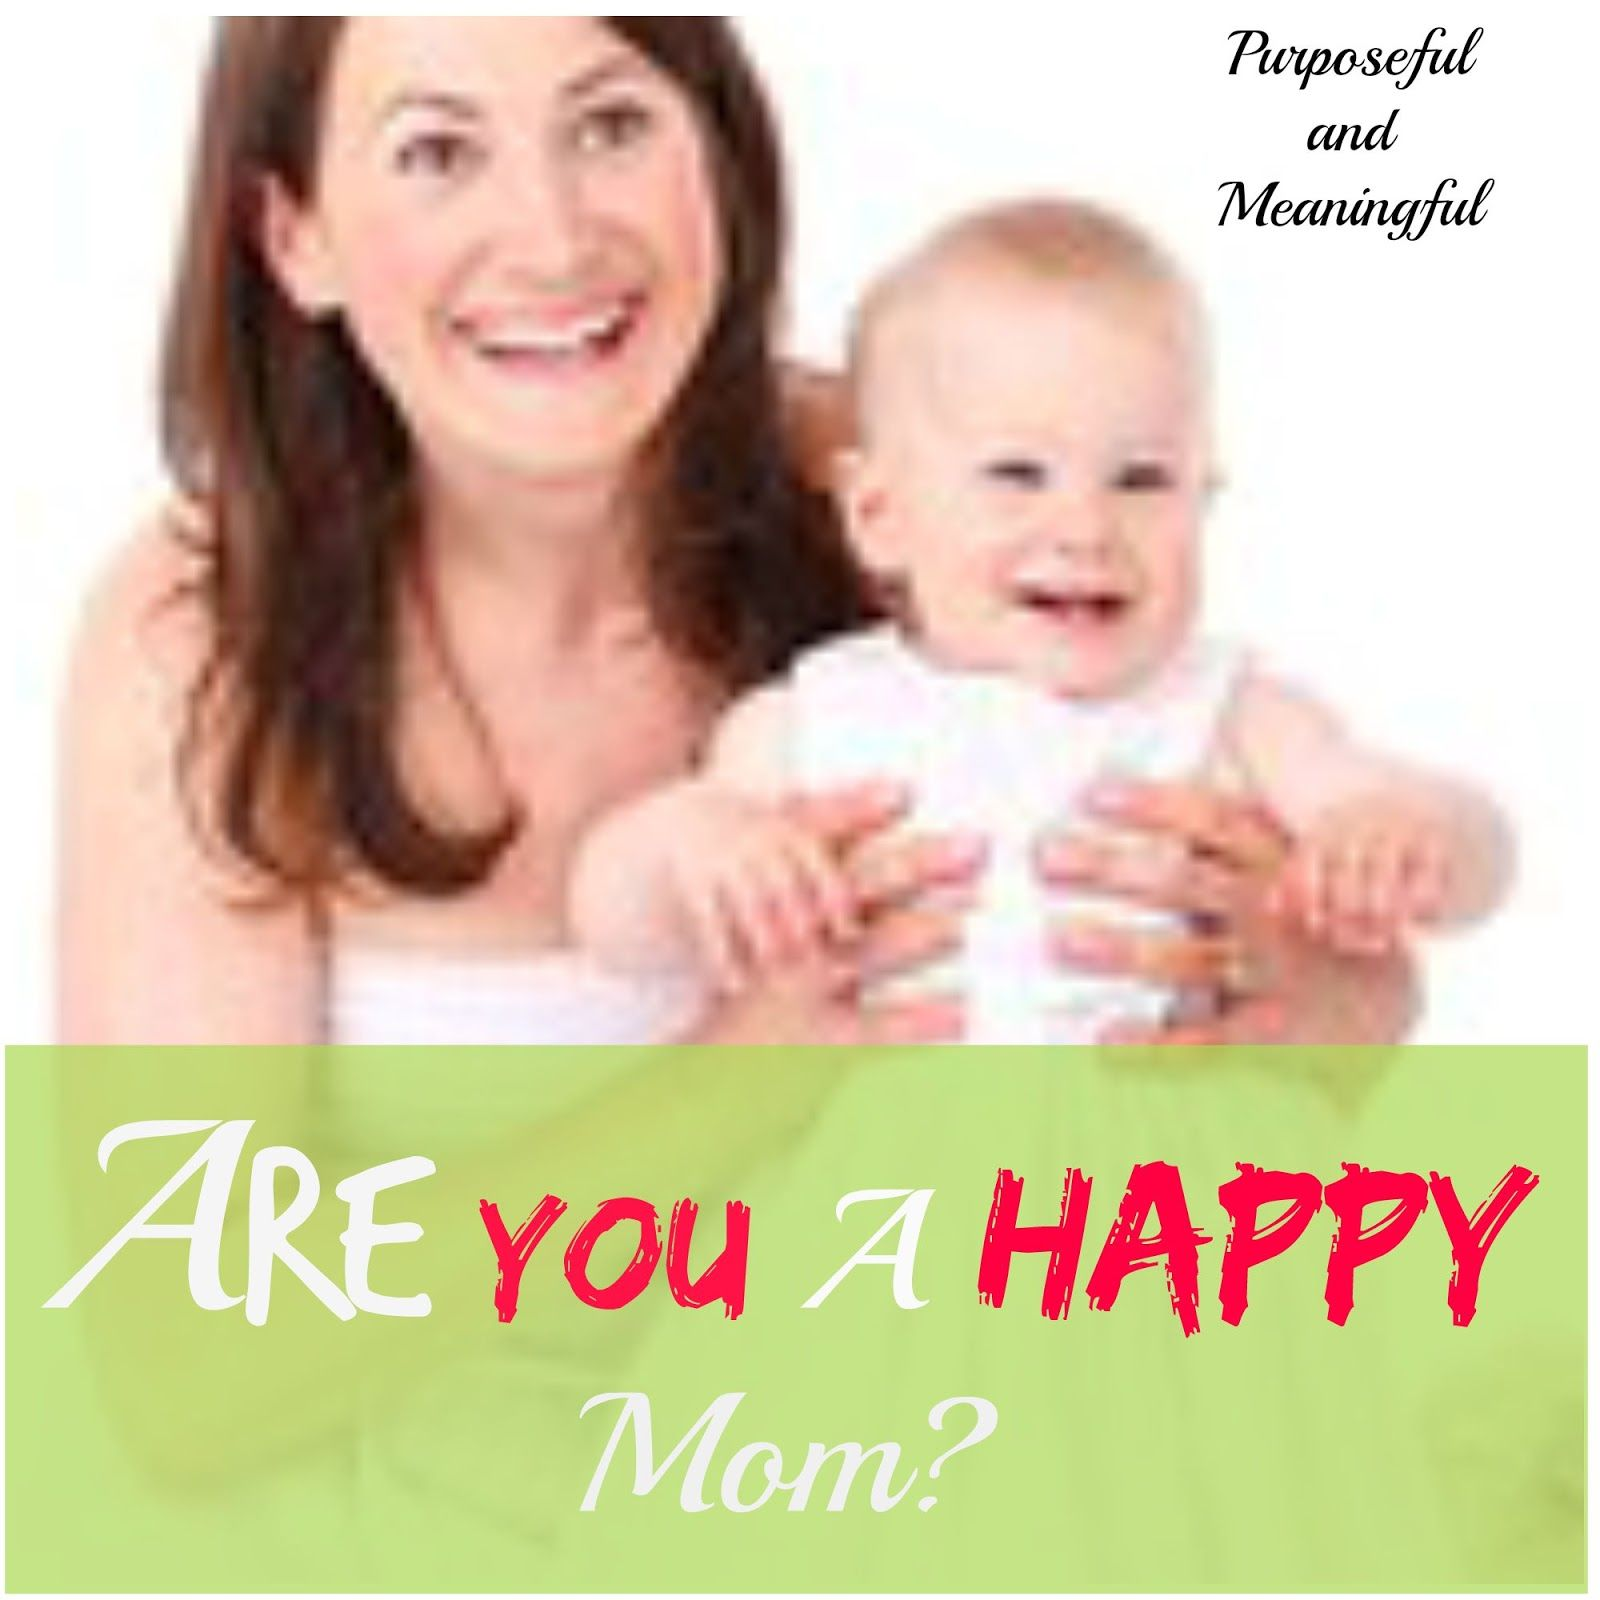 Are you a Happy Mom? Take these questions and see if you are happy being a mom...